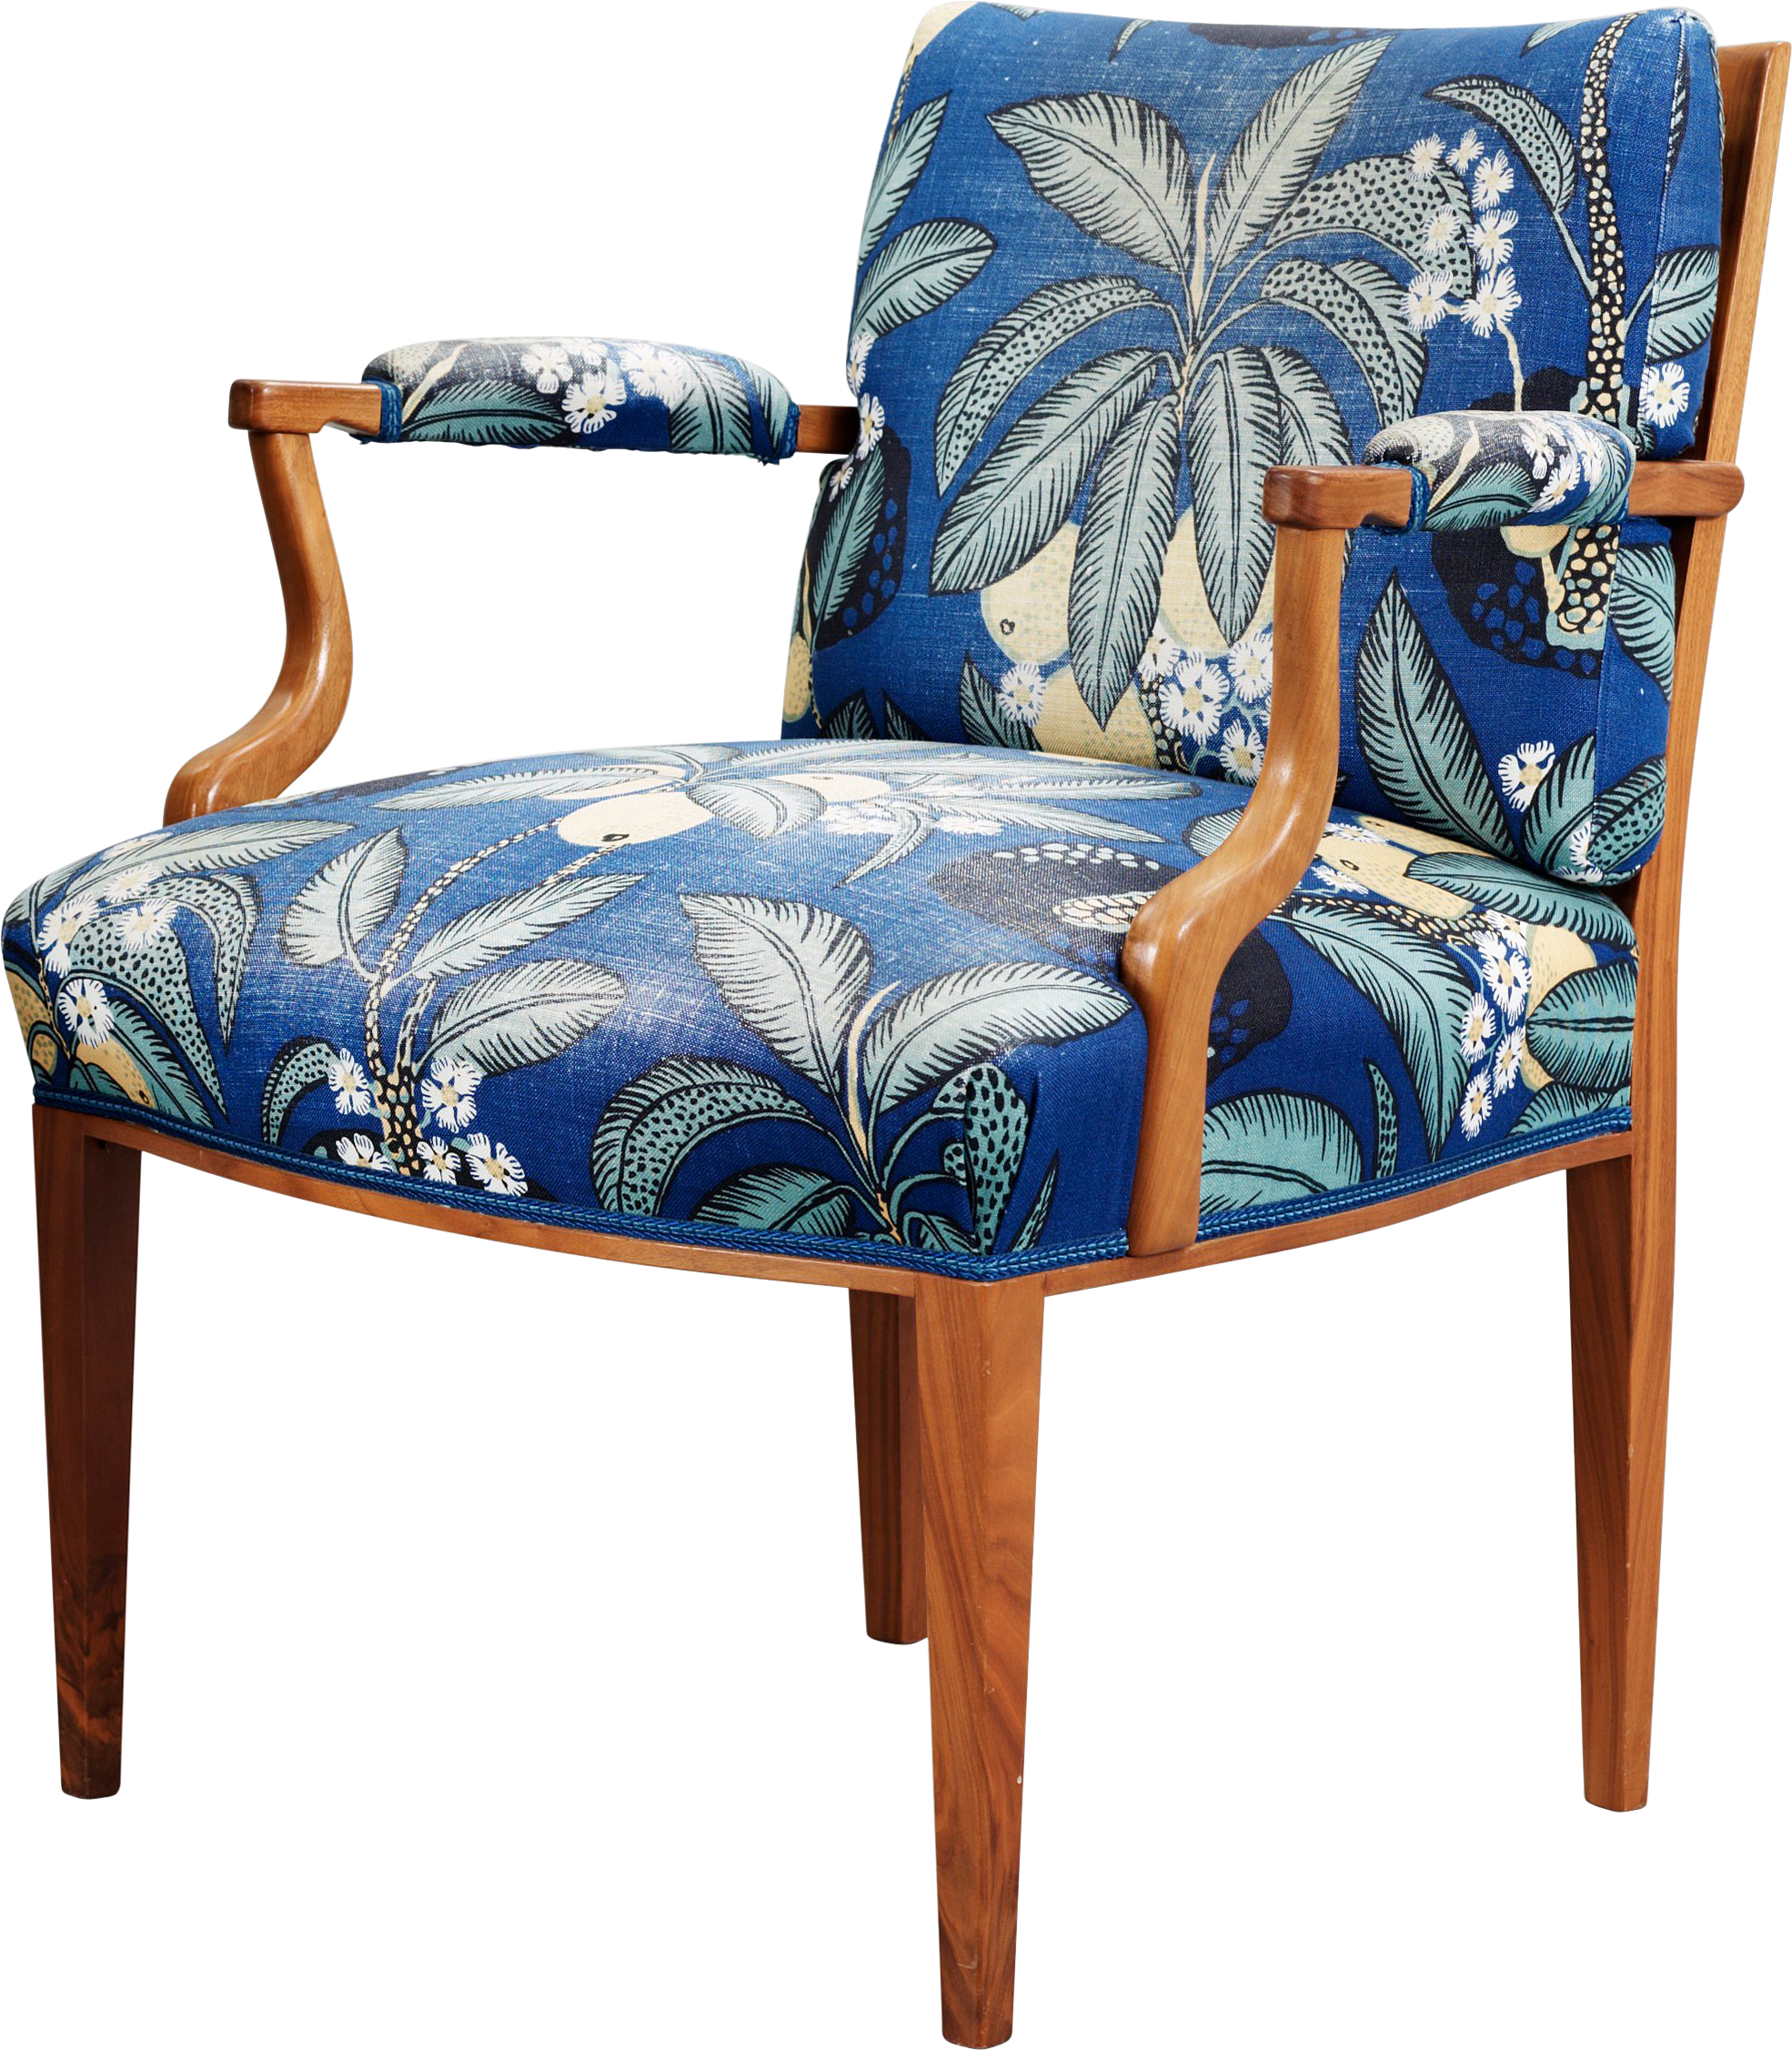 Download Png Image Armchair Png Image Retro Dining Chairs Blue Dining Chair Wicker Dining Chairs